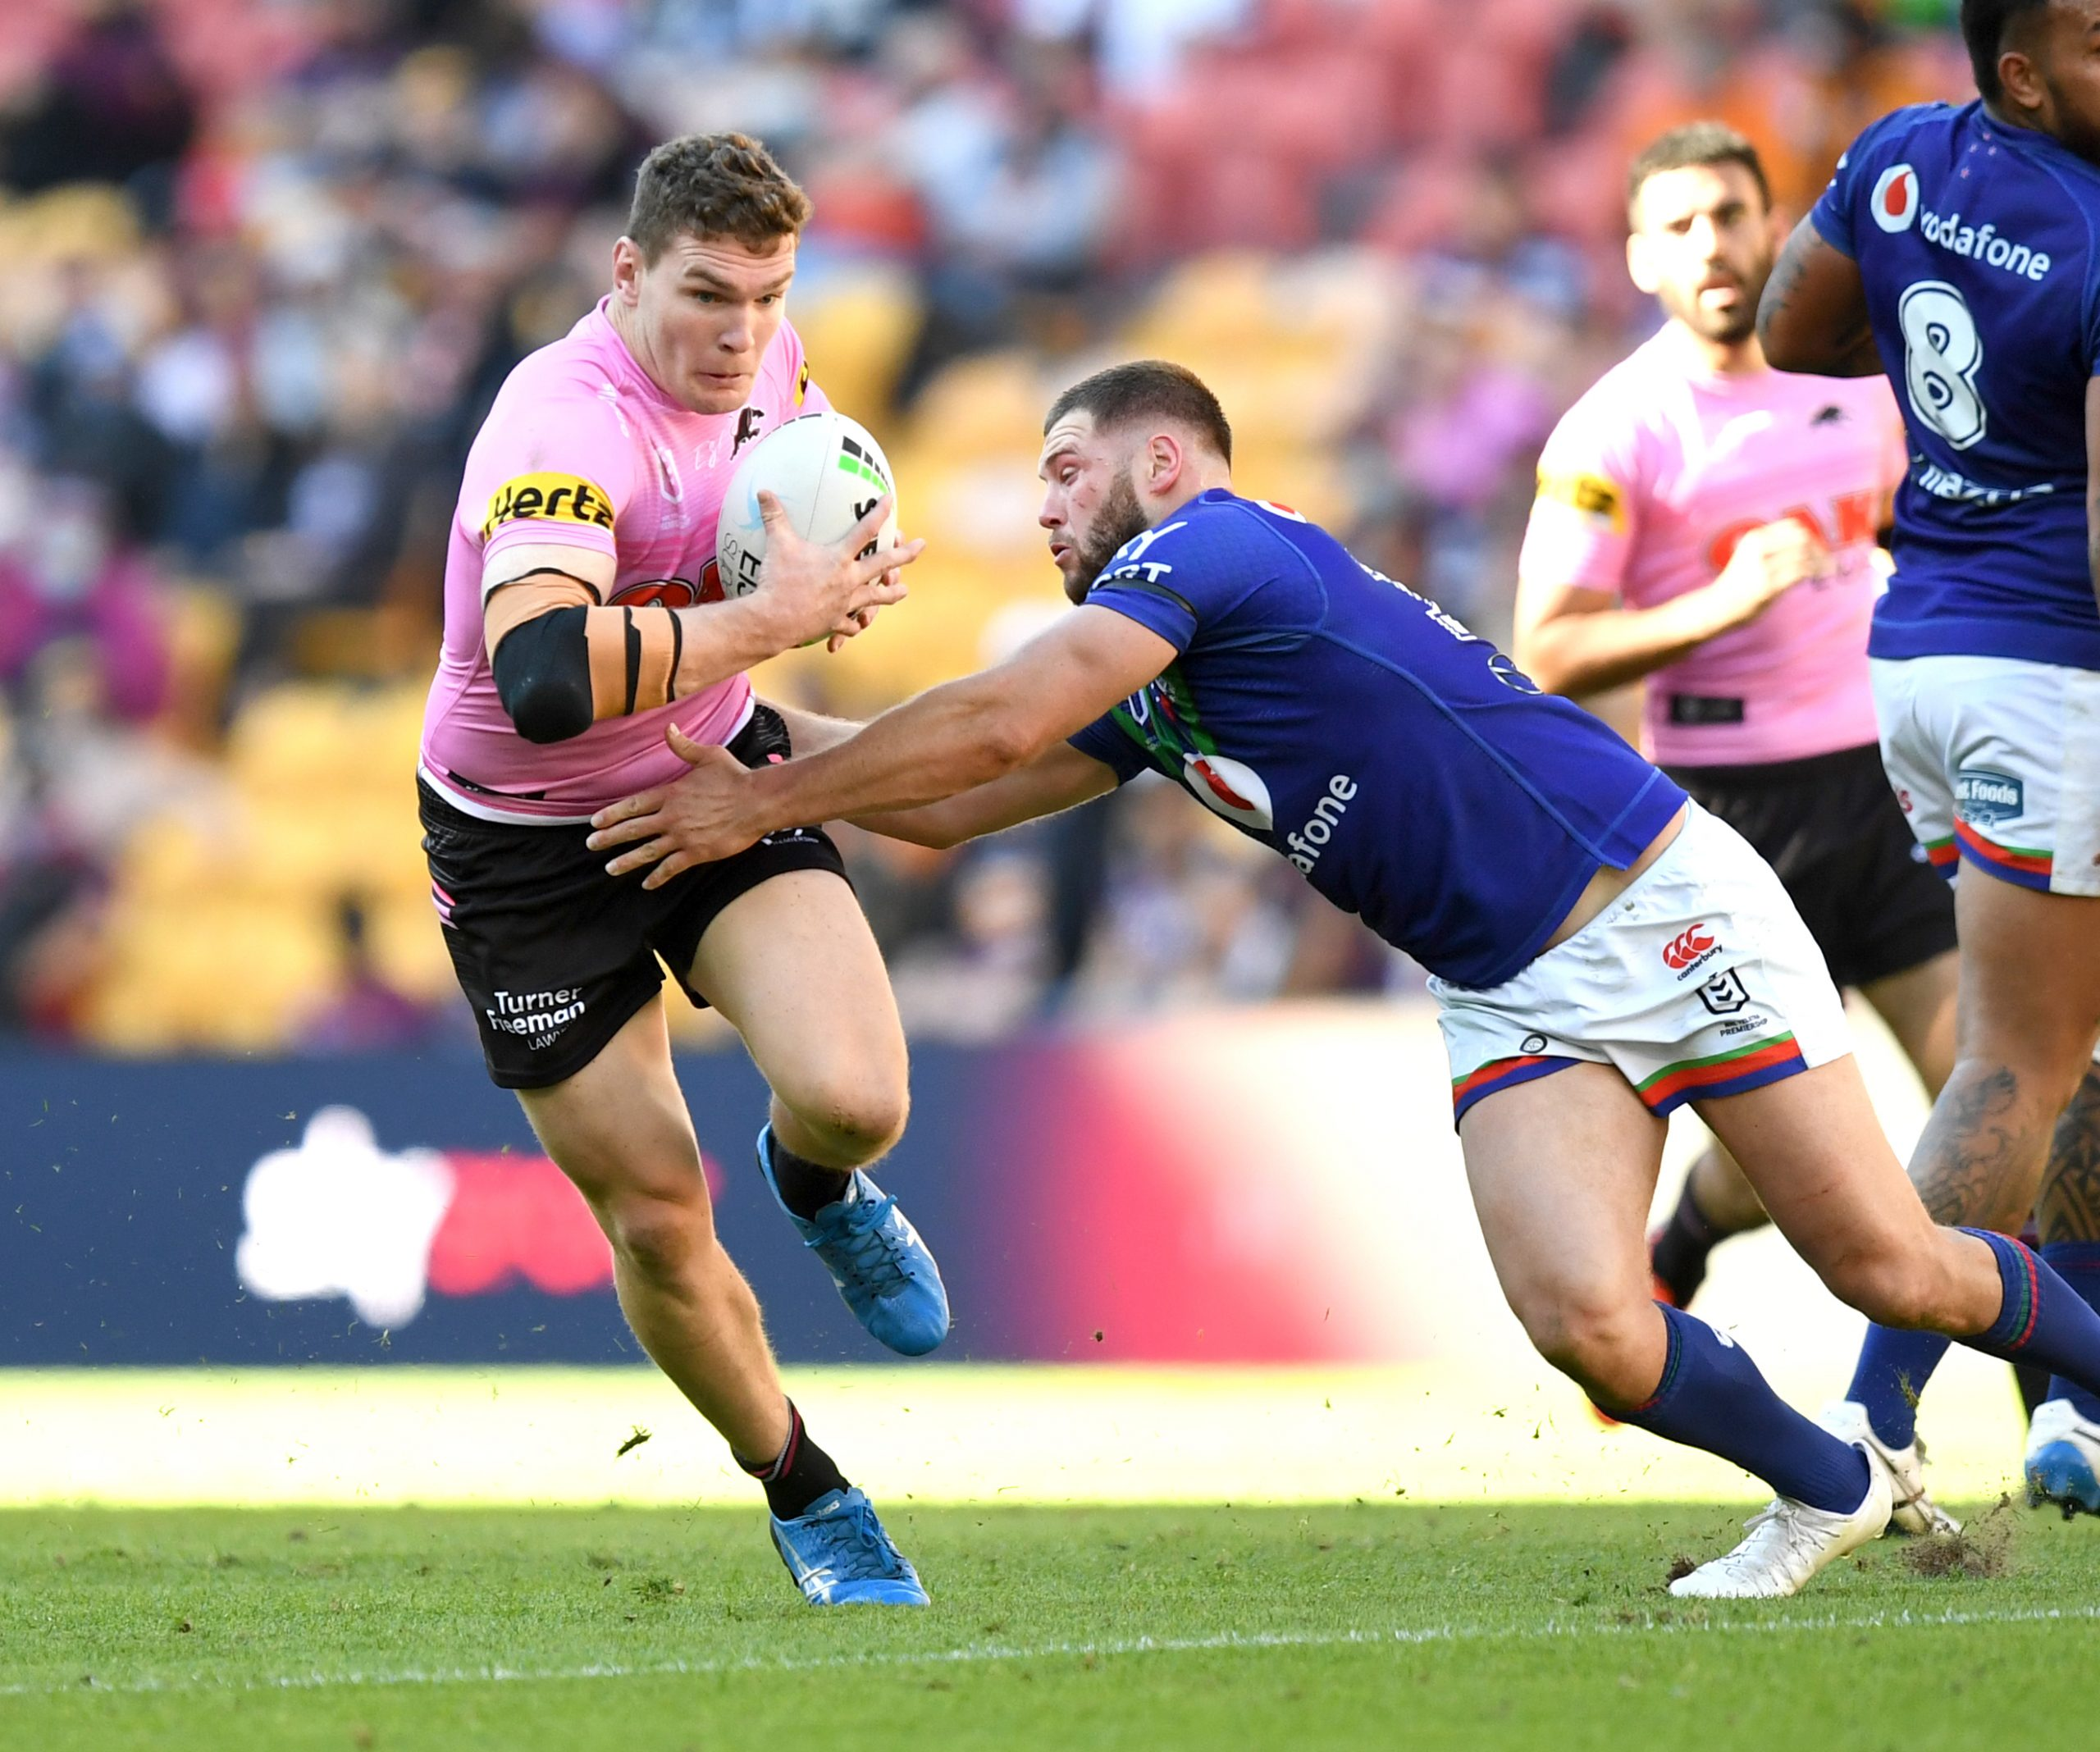 Panthers romp away as outgunned Warriors run out of troops